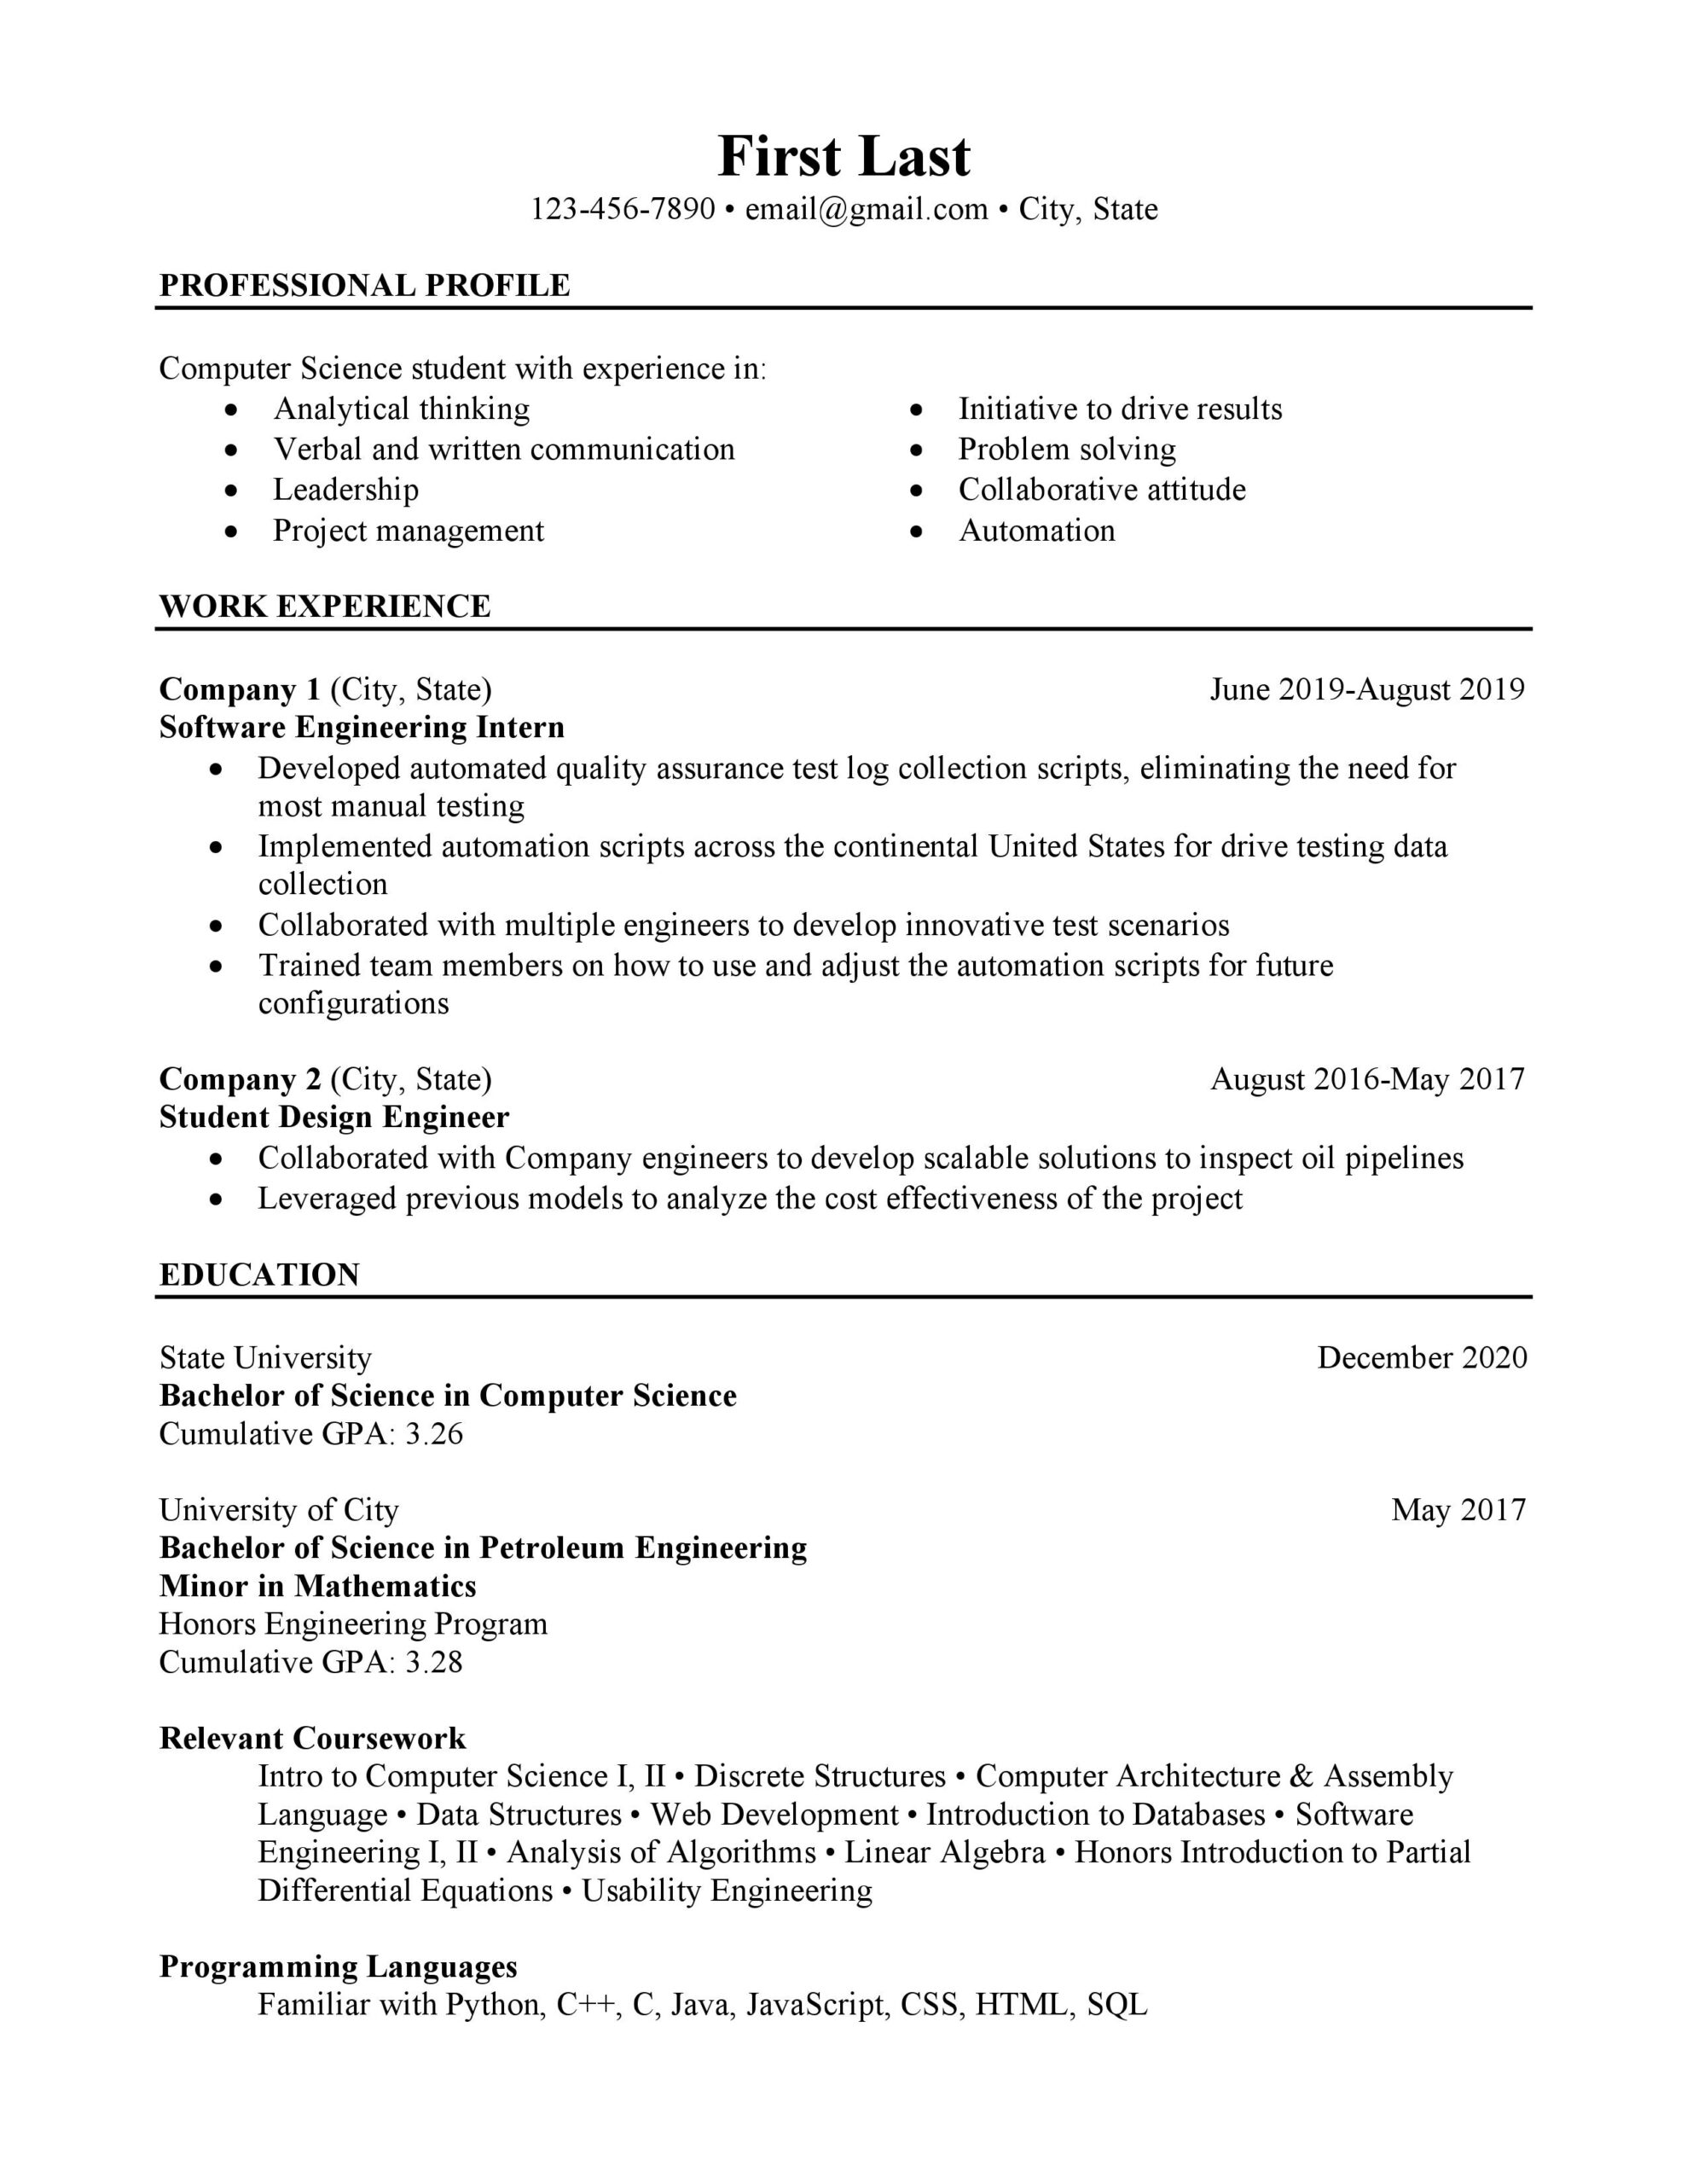 computer science student looking to improve resume resumes programming projects for Resume Programming Projects For Resume Reddit